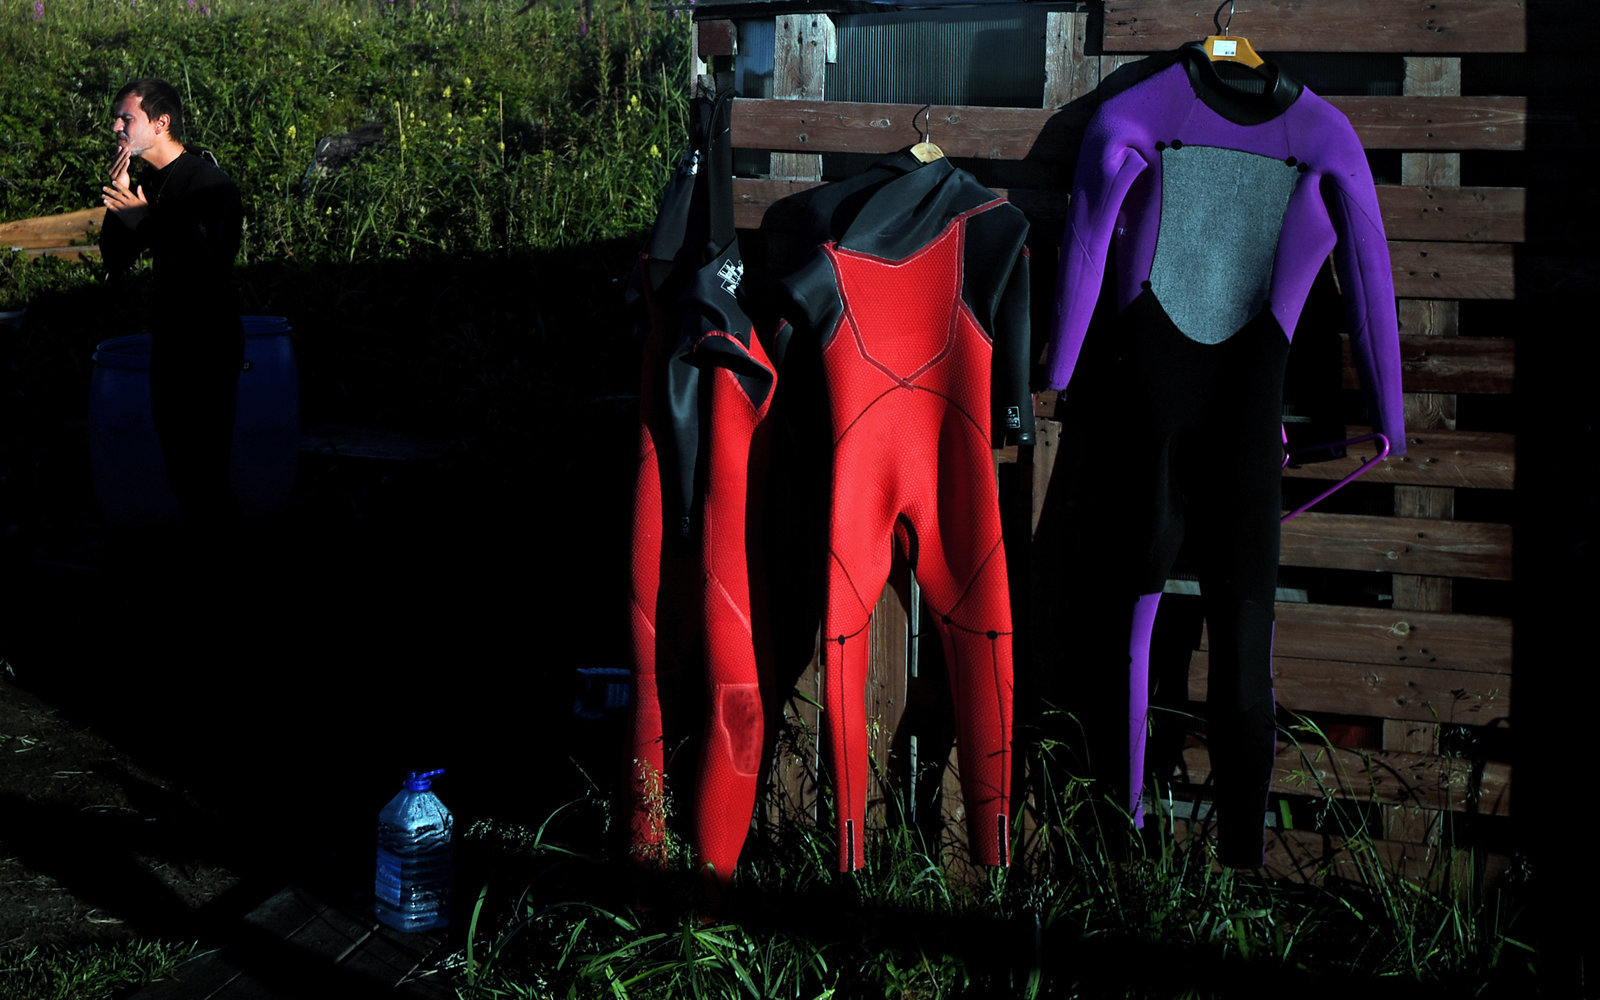 Wetsuits dry after surfing